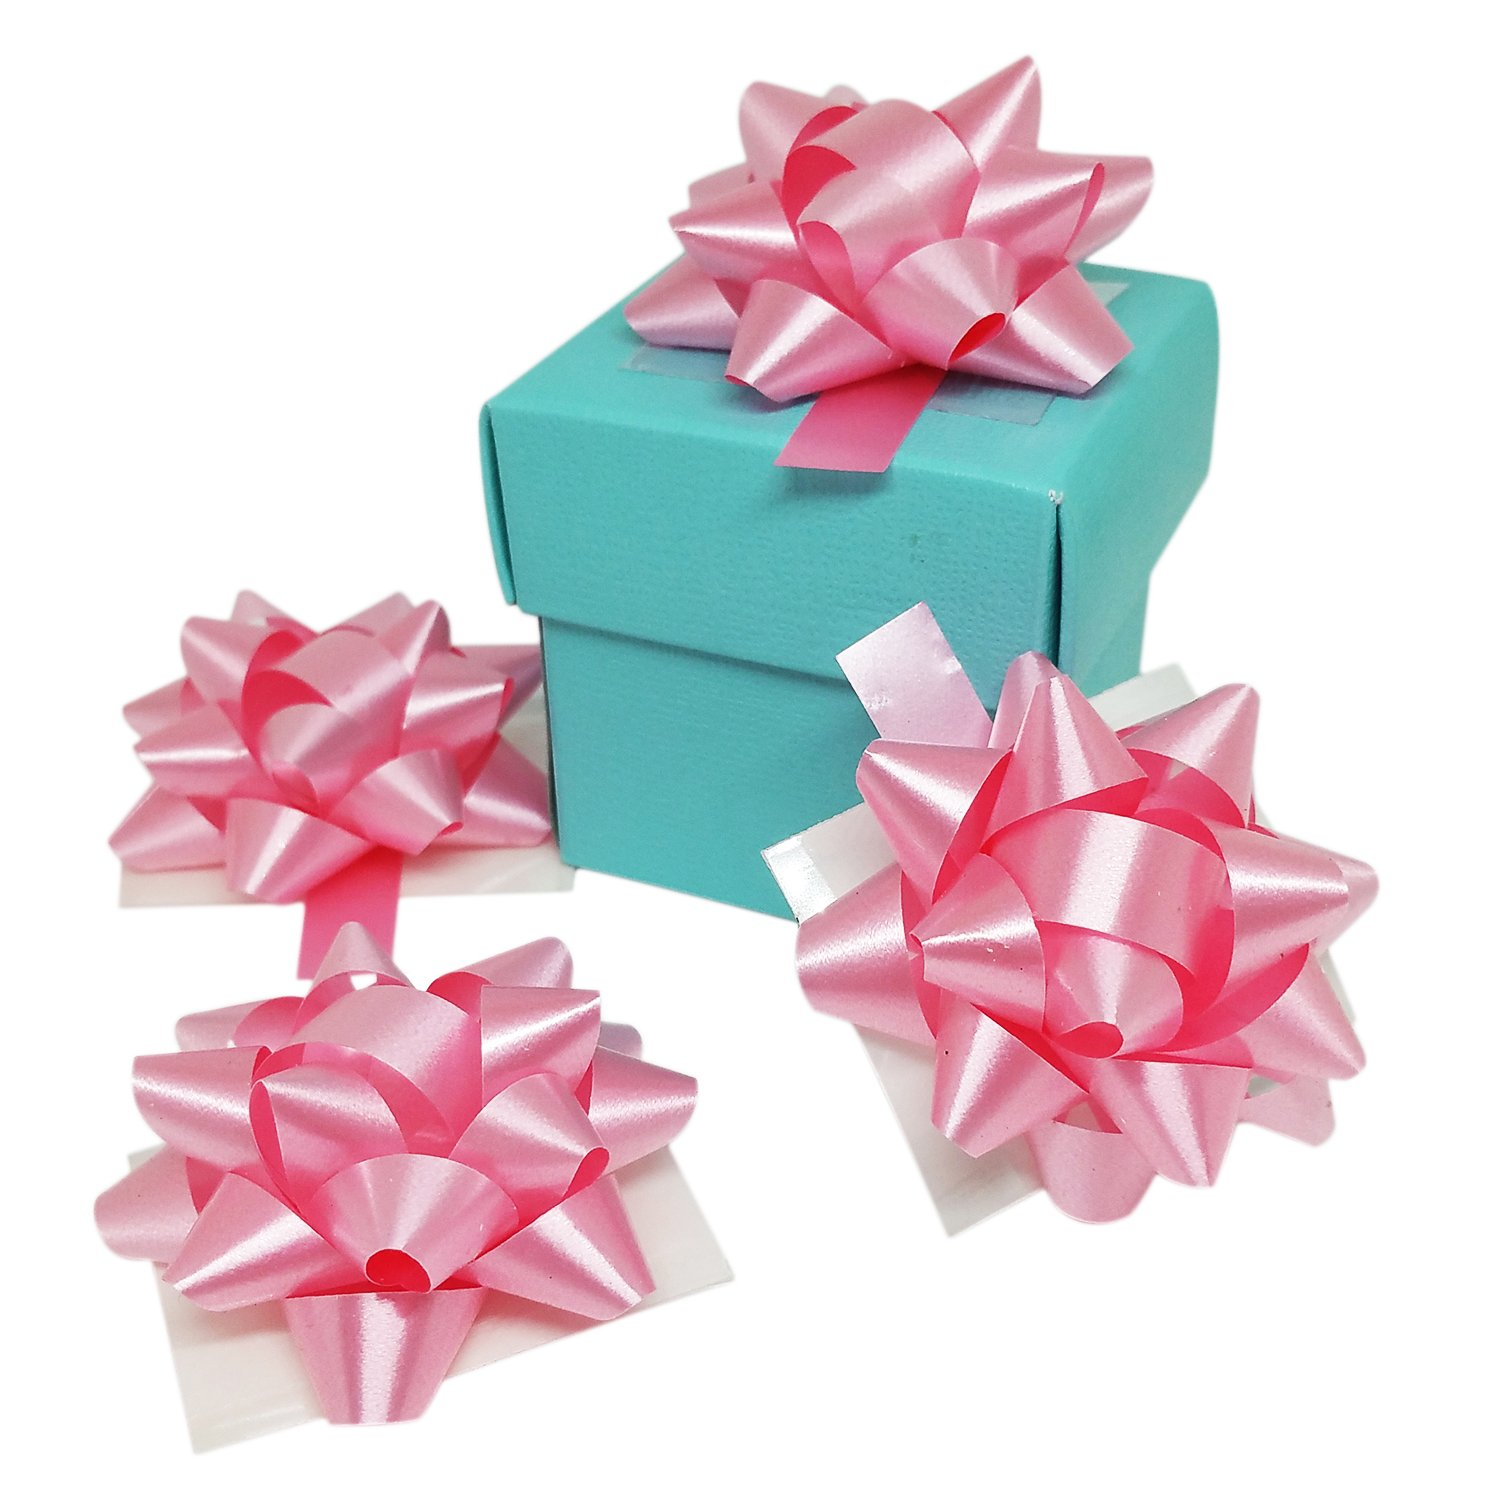 Amazon.com: Favors Boxes- Tiffany Blue Baby Shower Favors Boxes With ...